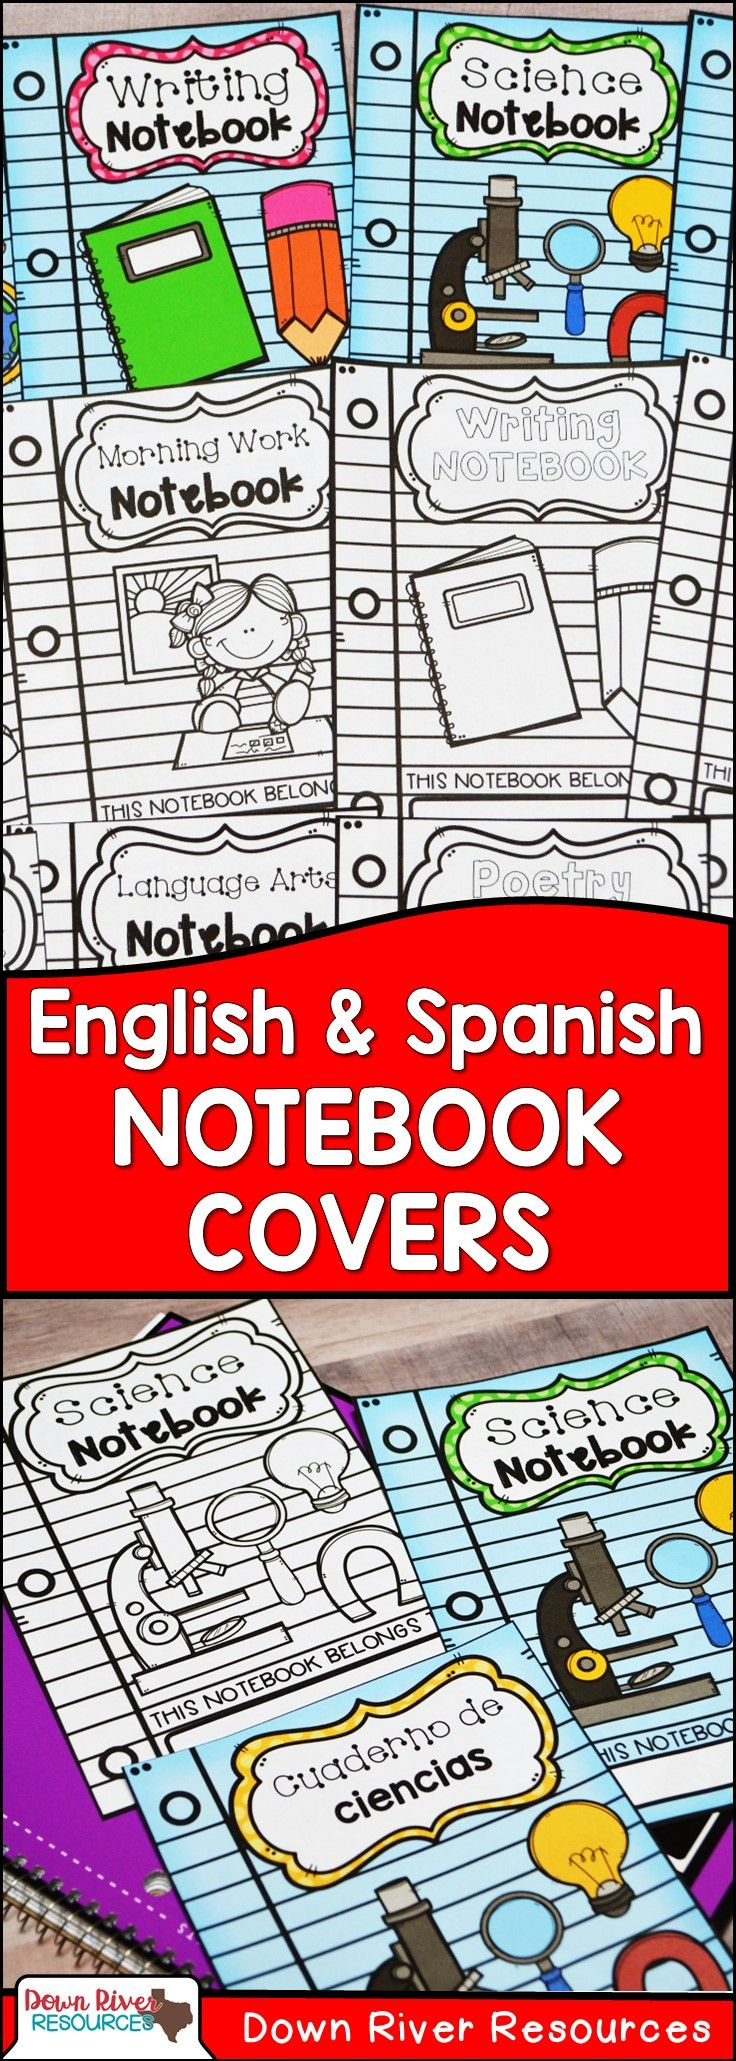 Binder Cover Social Studies | Social studies notebook ... |Human Studies Science Notebook Cover